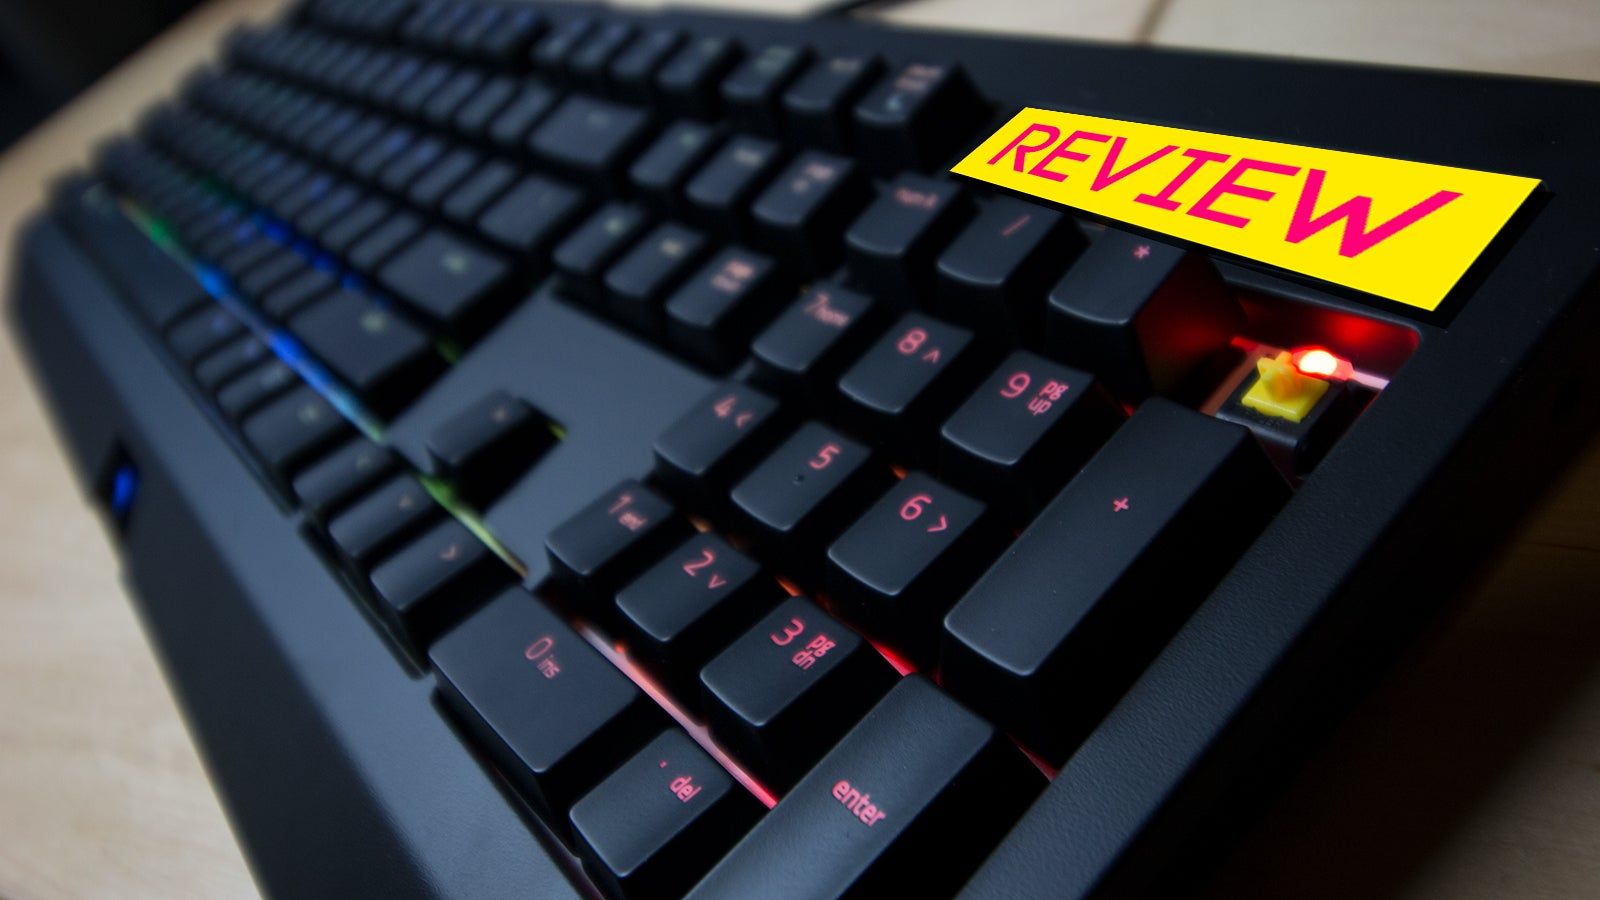 Razer Blackwidow Chroma V2 Yellow Review: Going For Speed